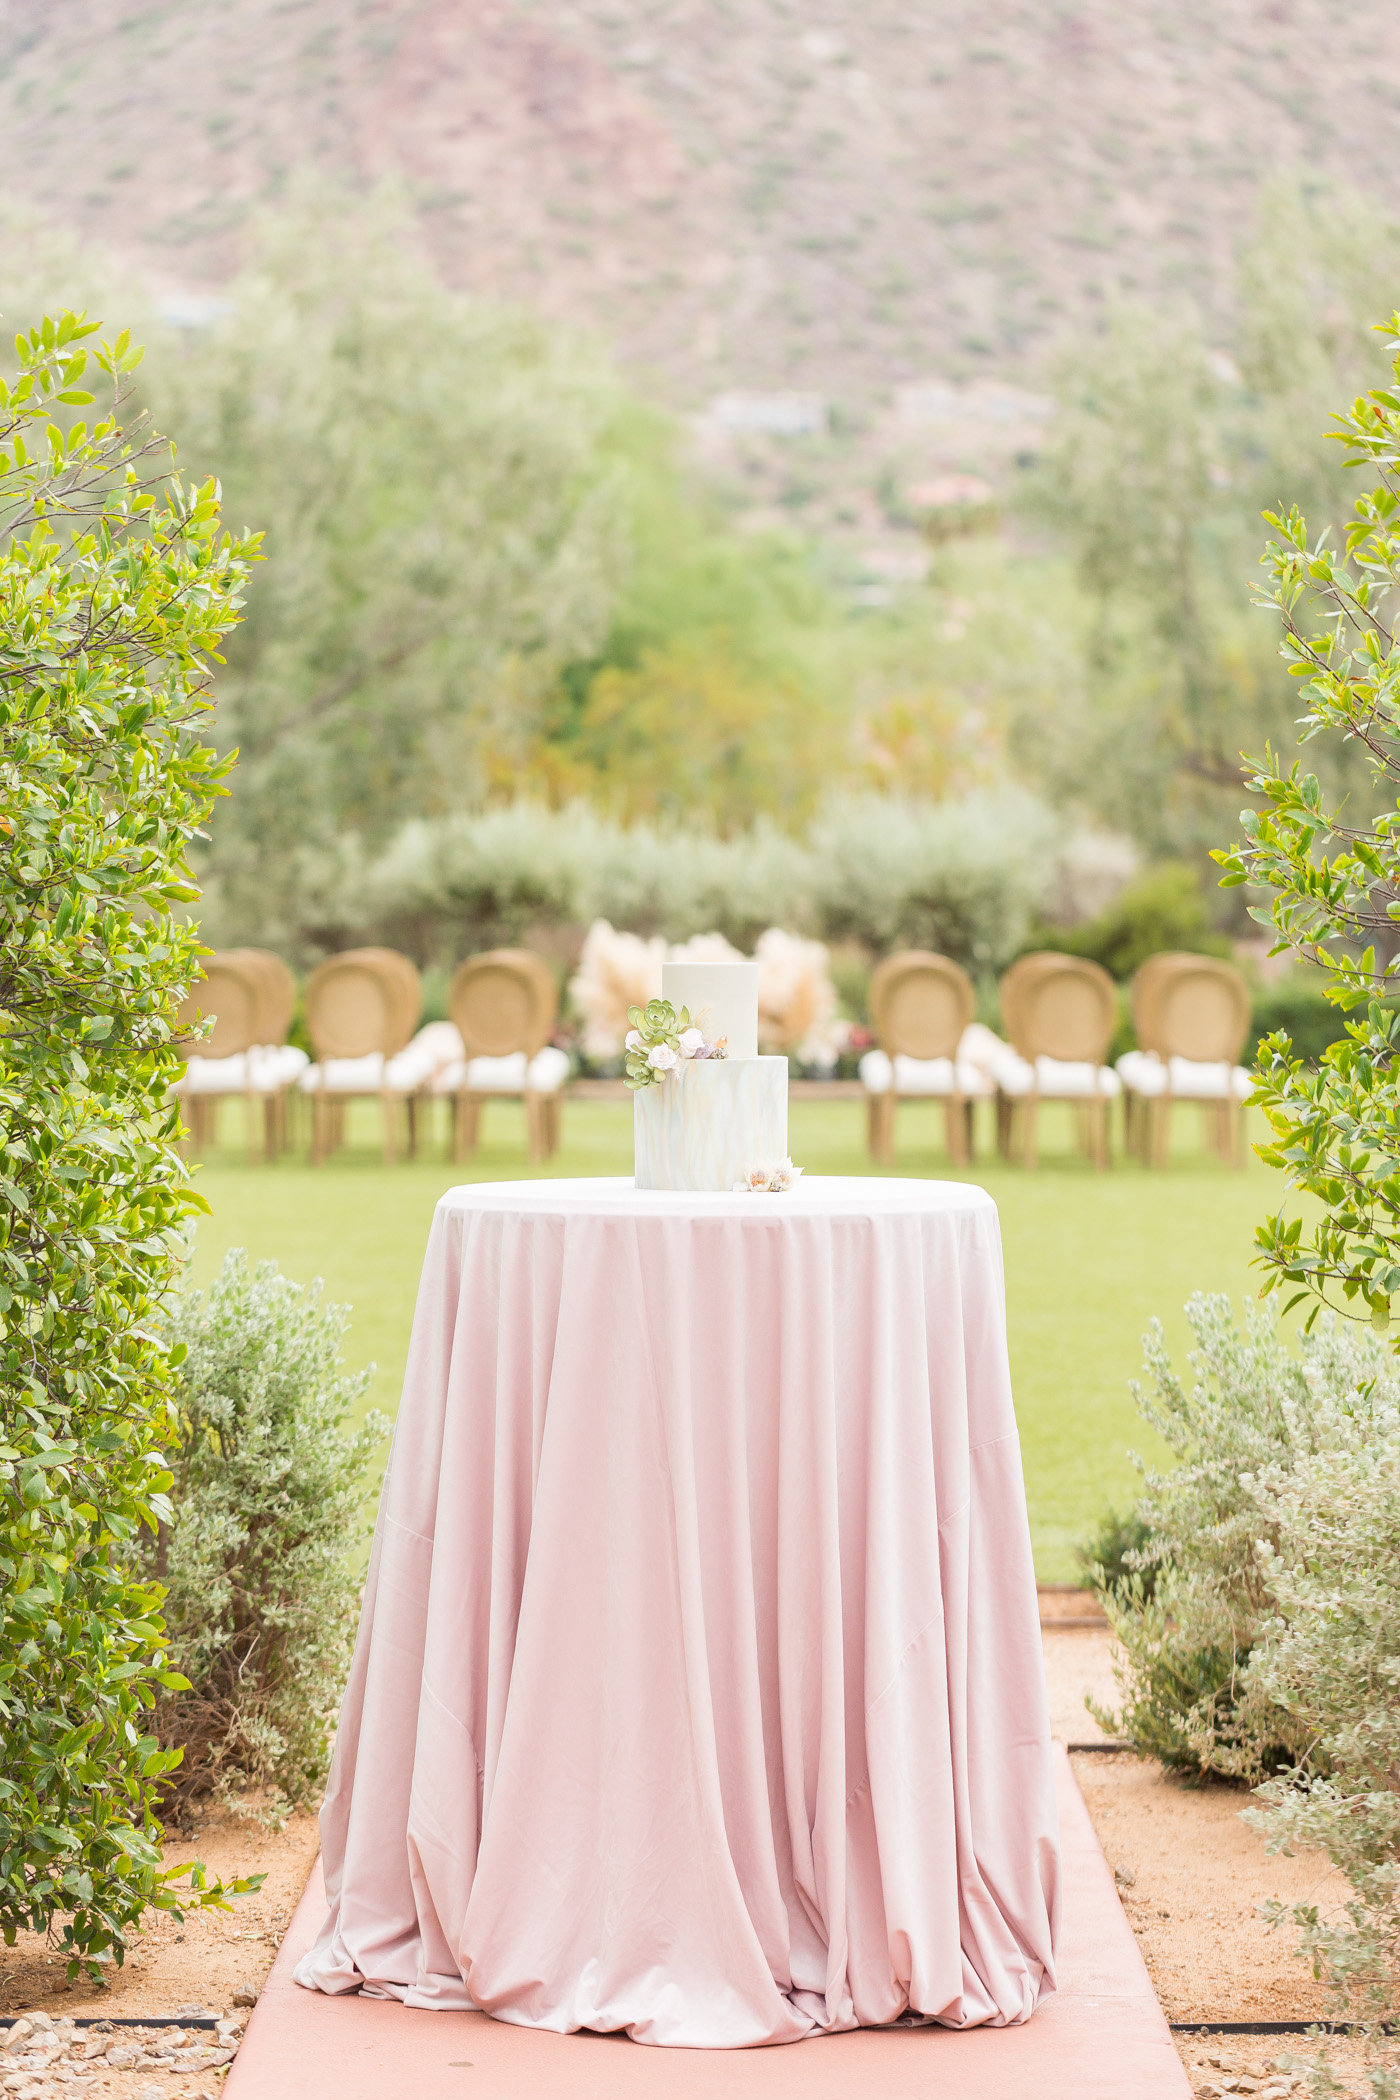 cake table - photo by Karlee K Photography http://ruffledblog.com/cheerful-desert-wedding-inspiration-with-bright-yellow